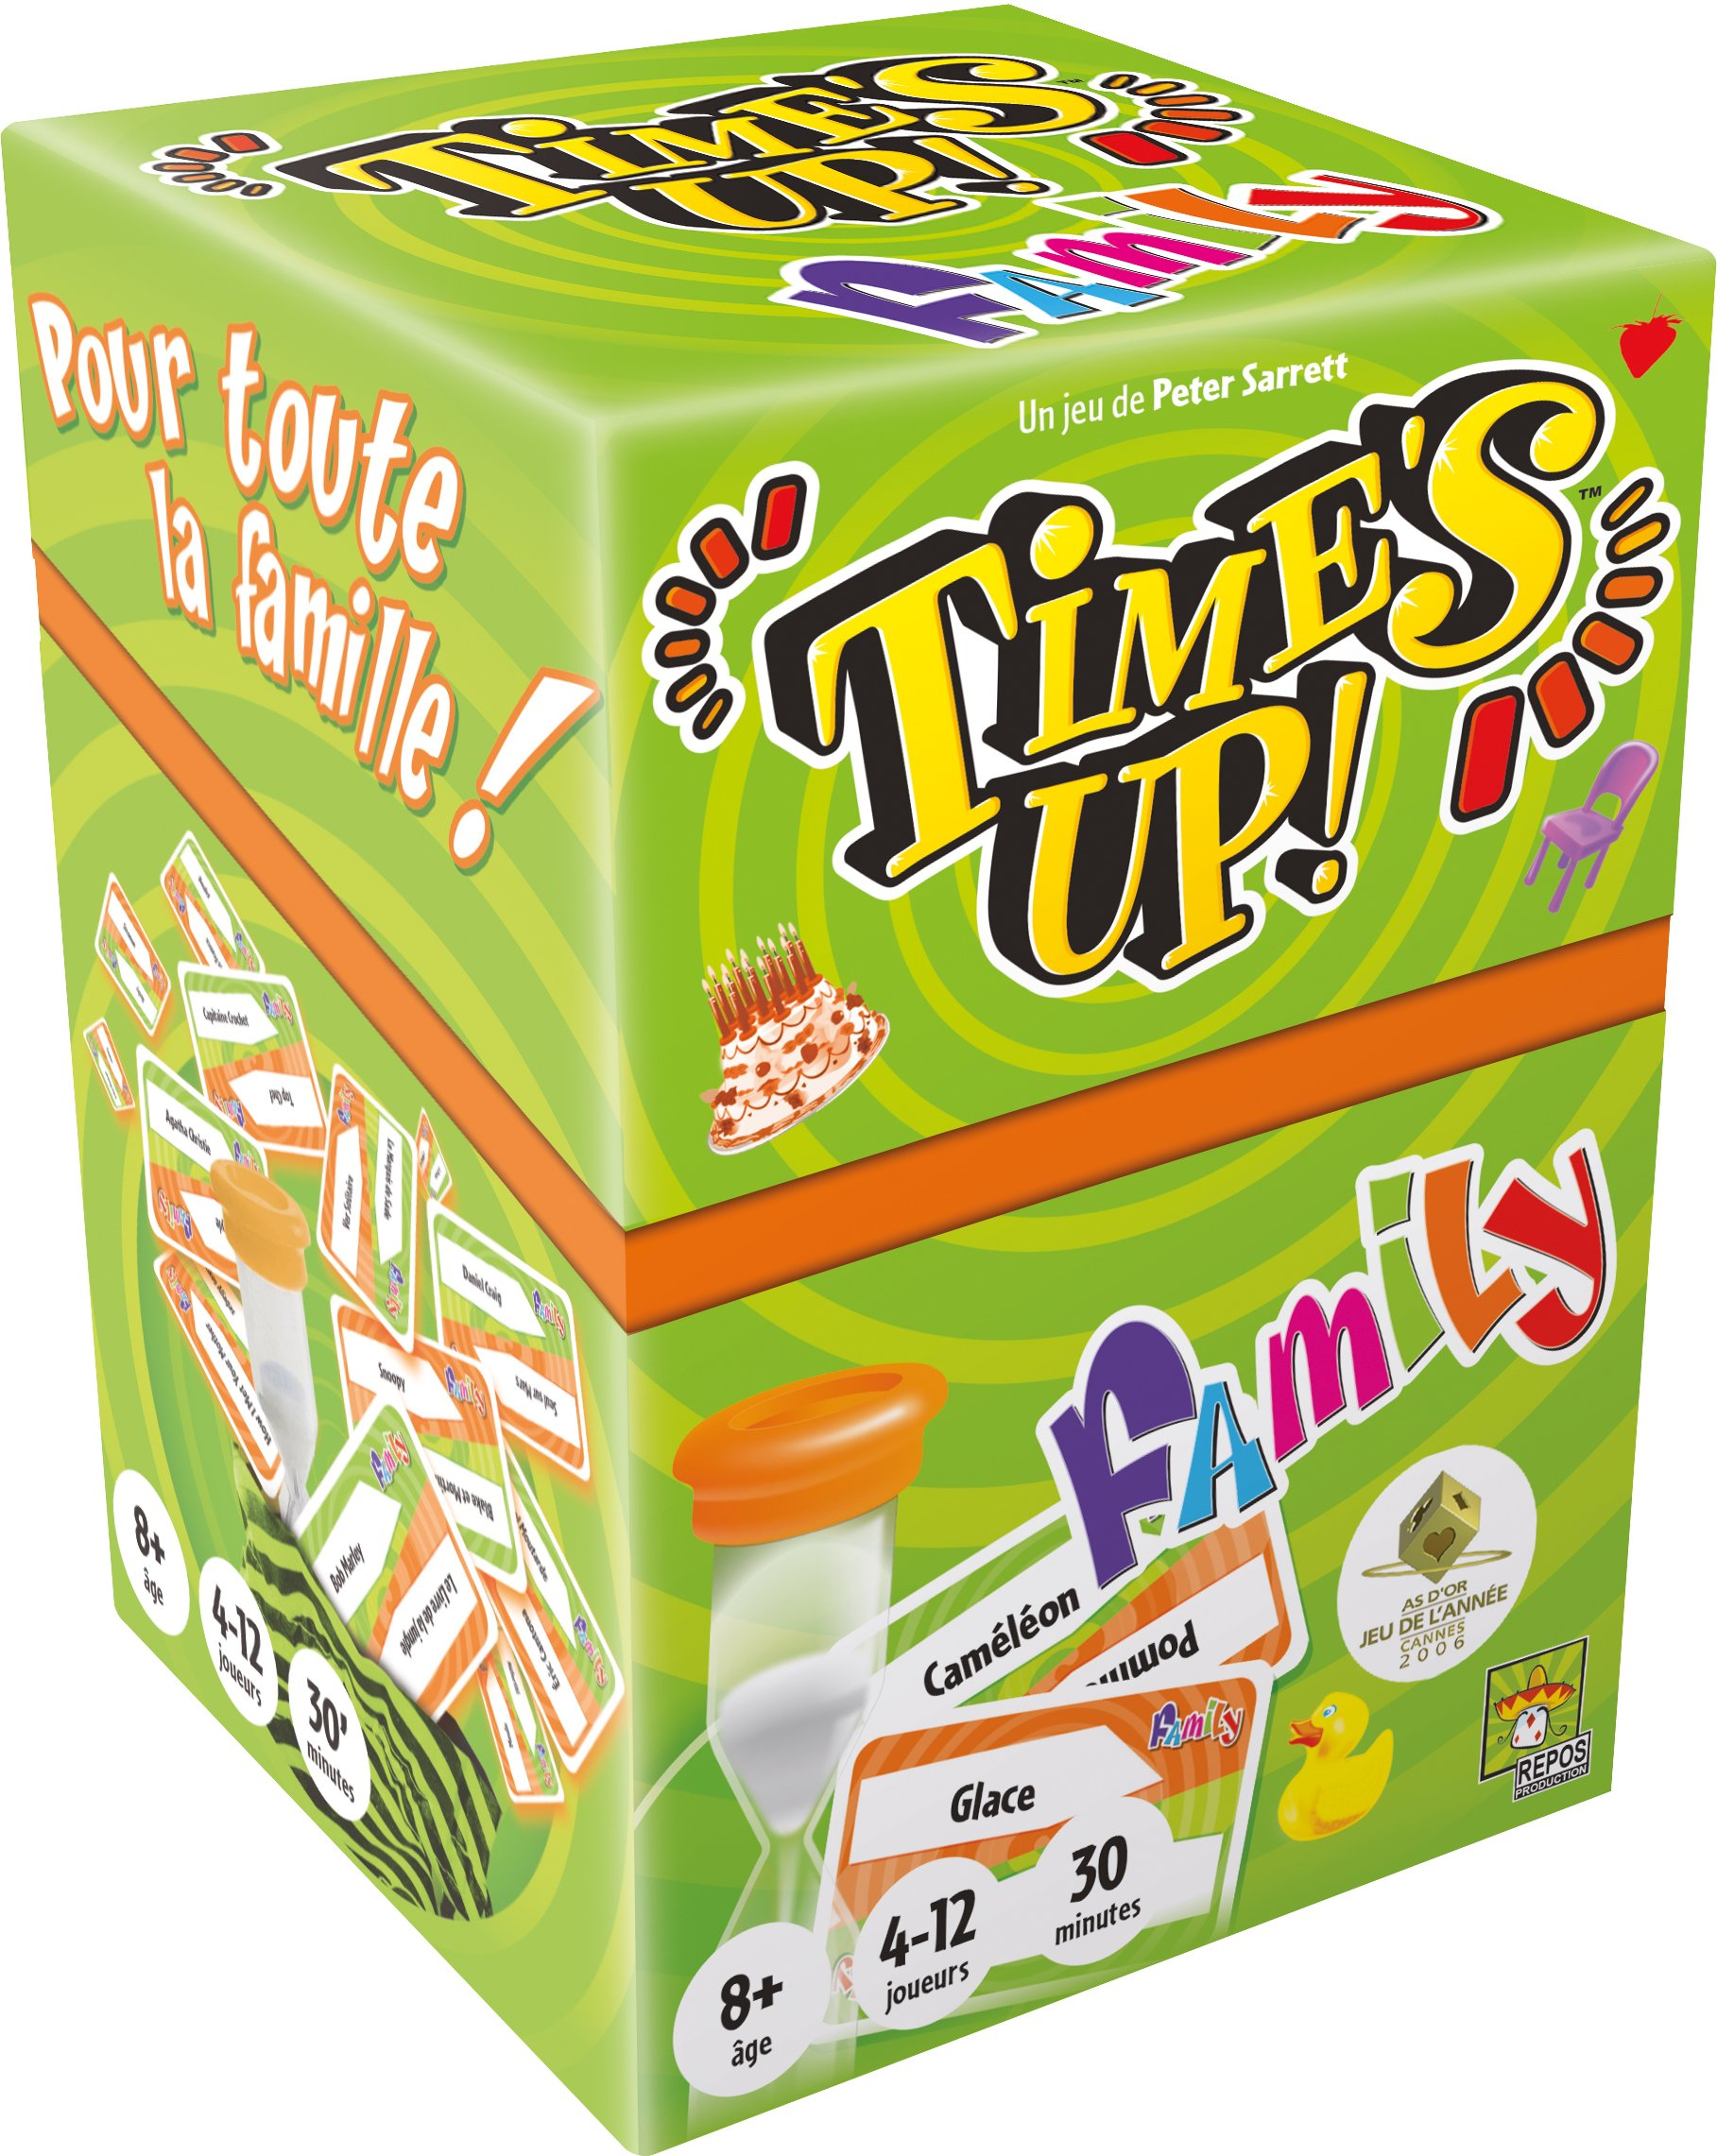 Asmodee - TUF1N - Time's Up - Family - Jeu d'Ambiance product image